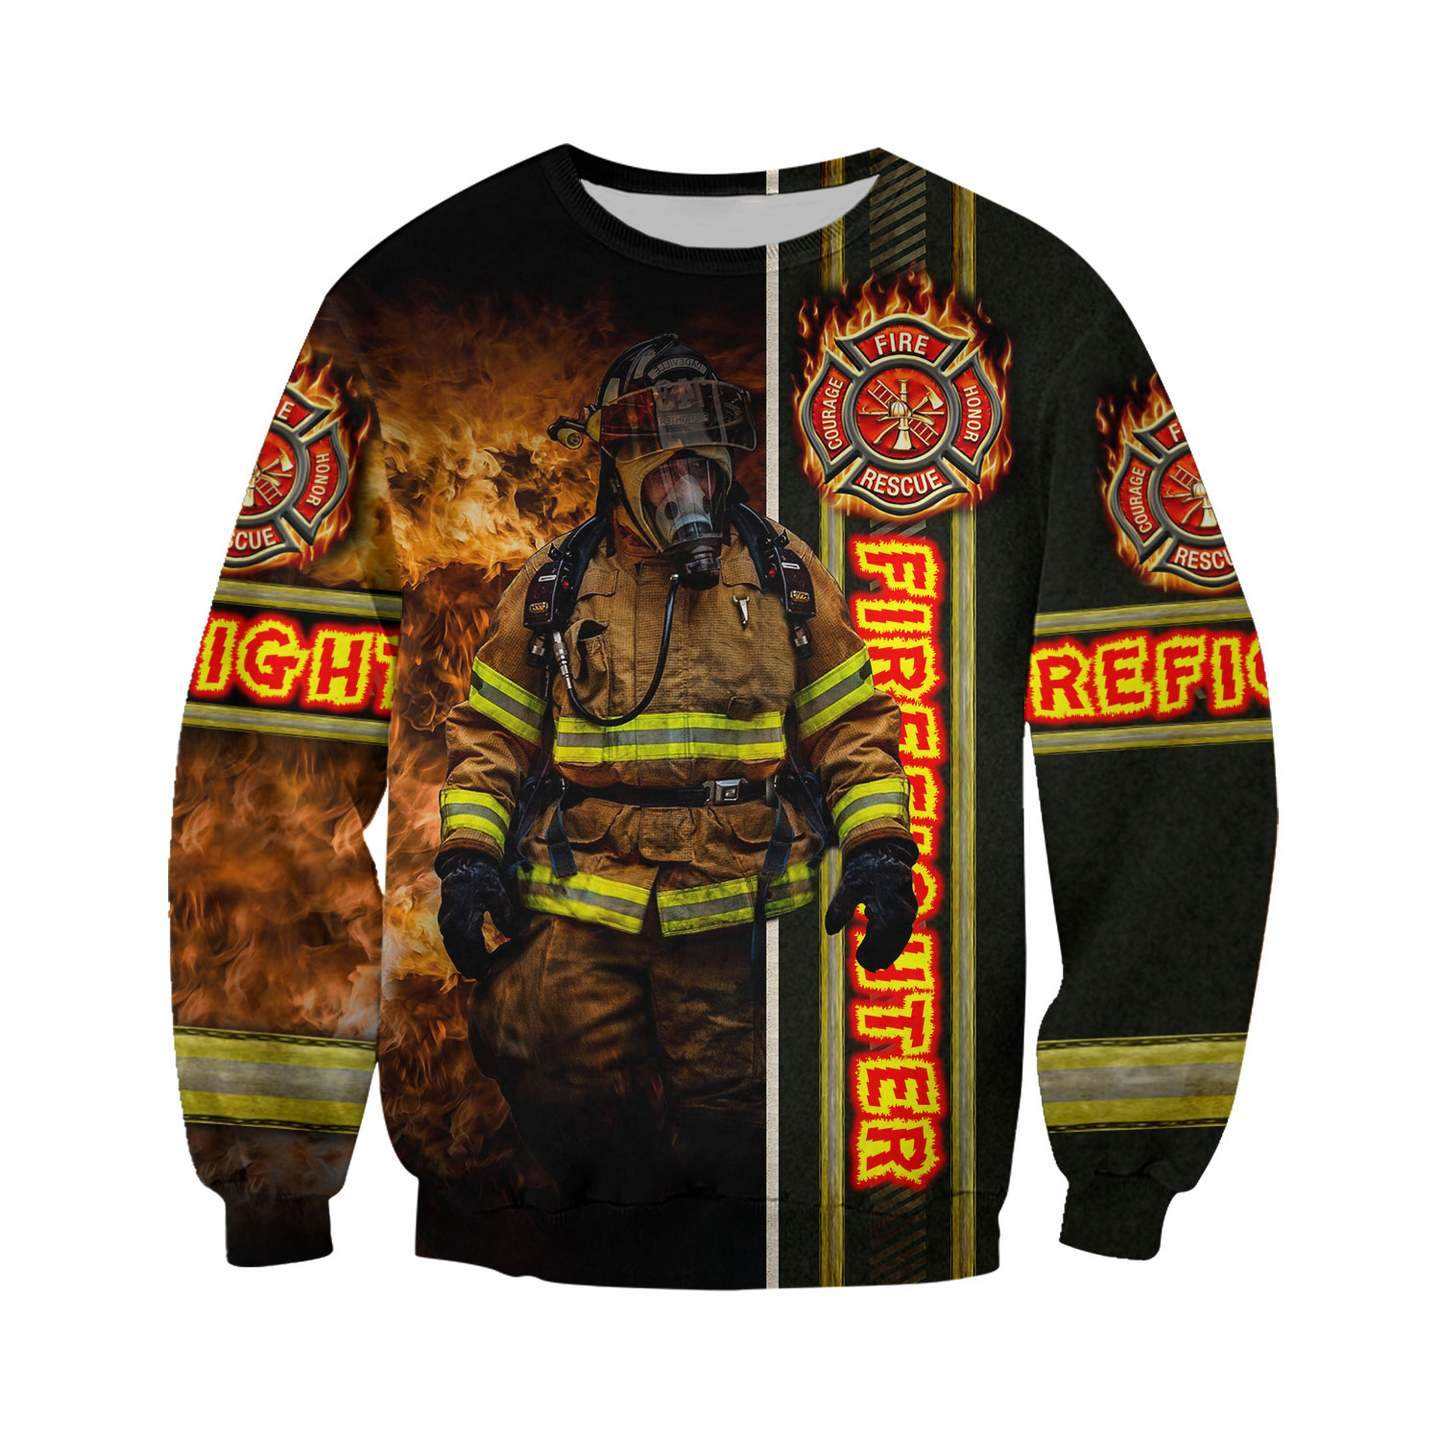 Fire fight 3d all over printed sweatshirt